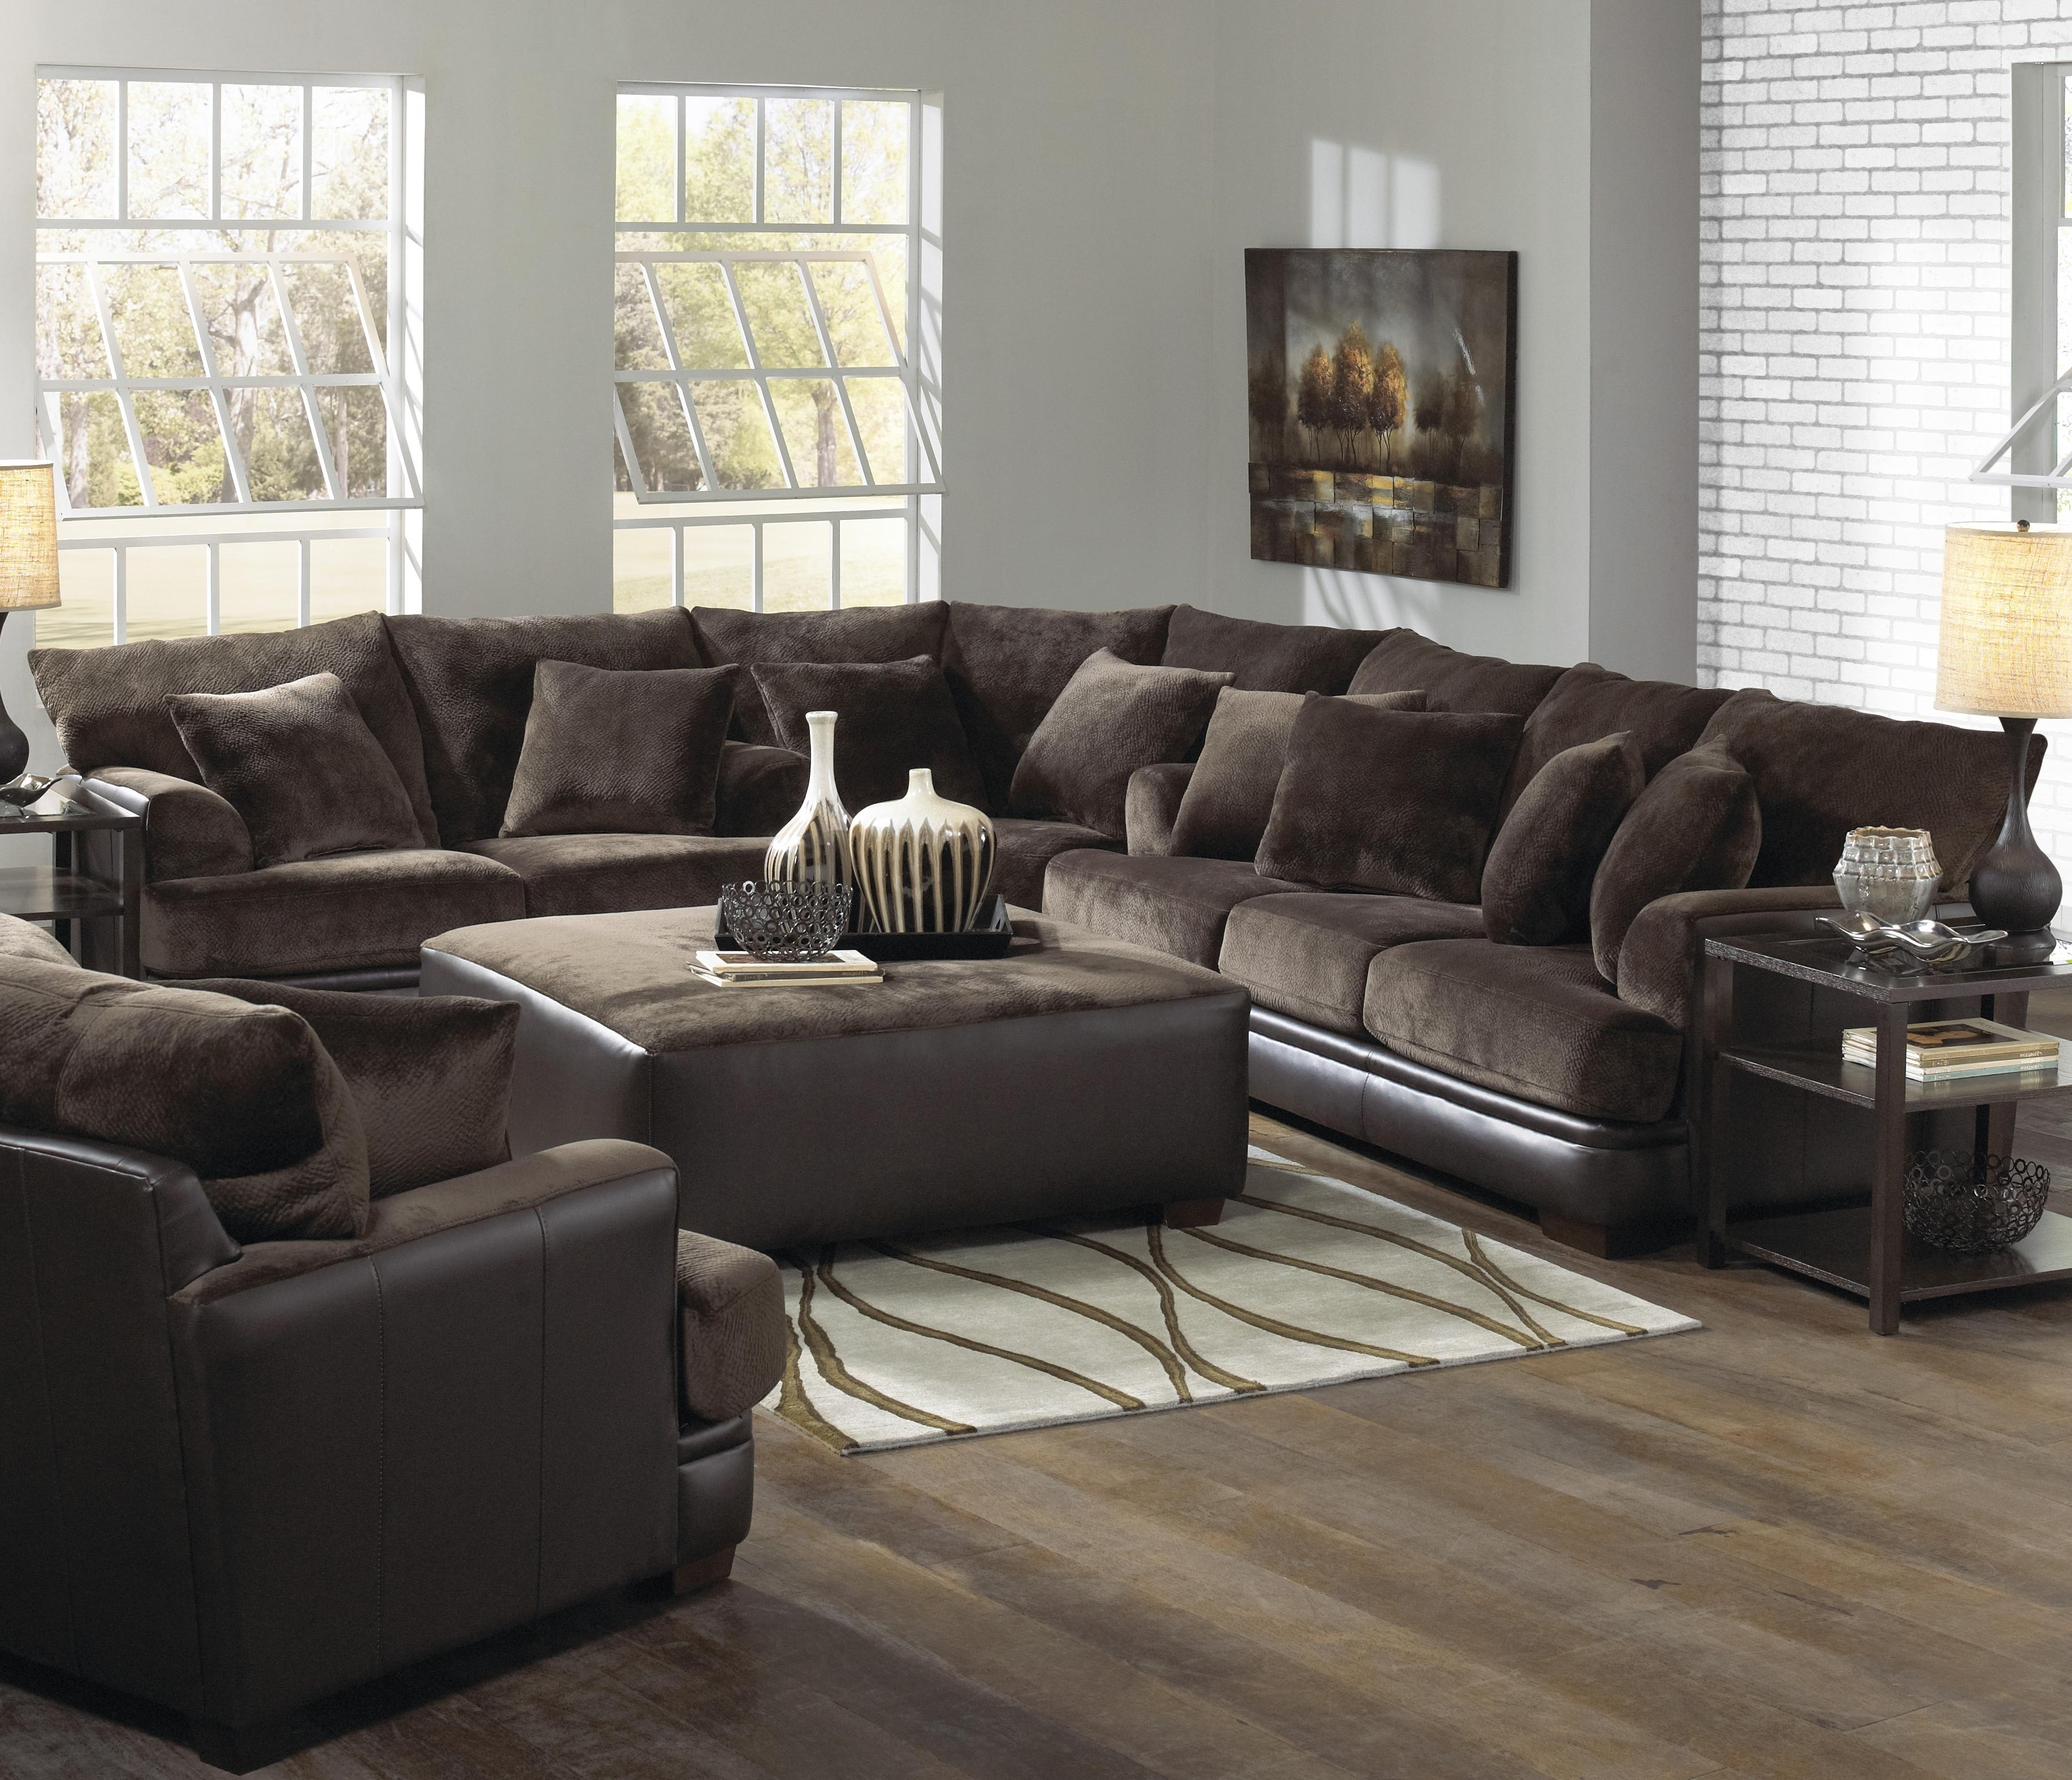 Reclining U Shaped Sectionals Intended For Latest Amazing Large U Shaped Sectional Sofa 18 On Reclining Sectional (View 2 of 15)